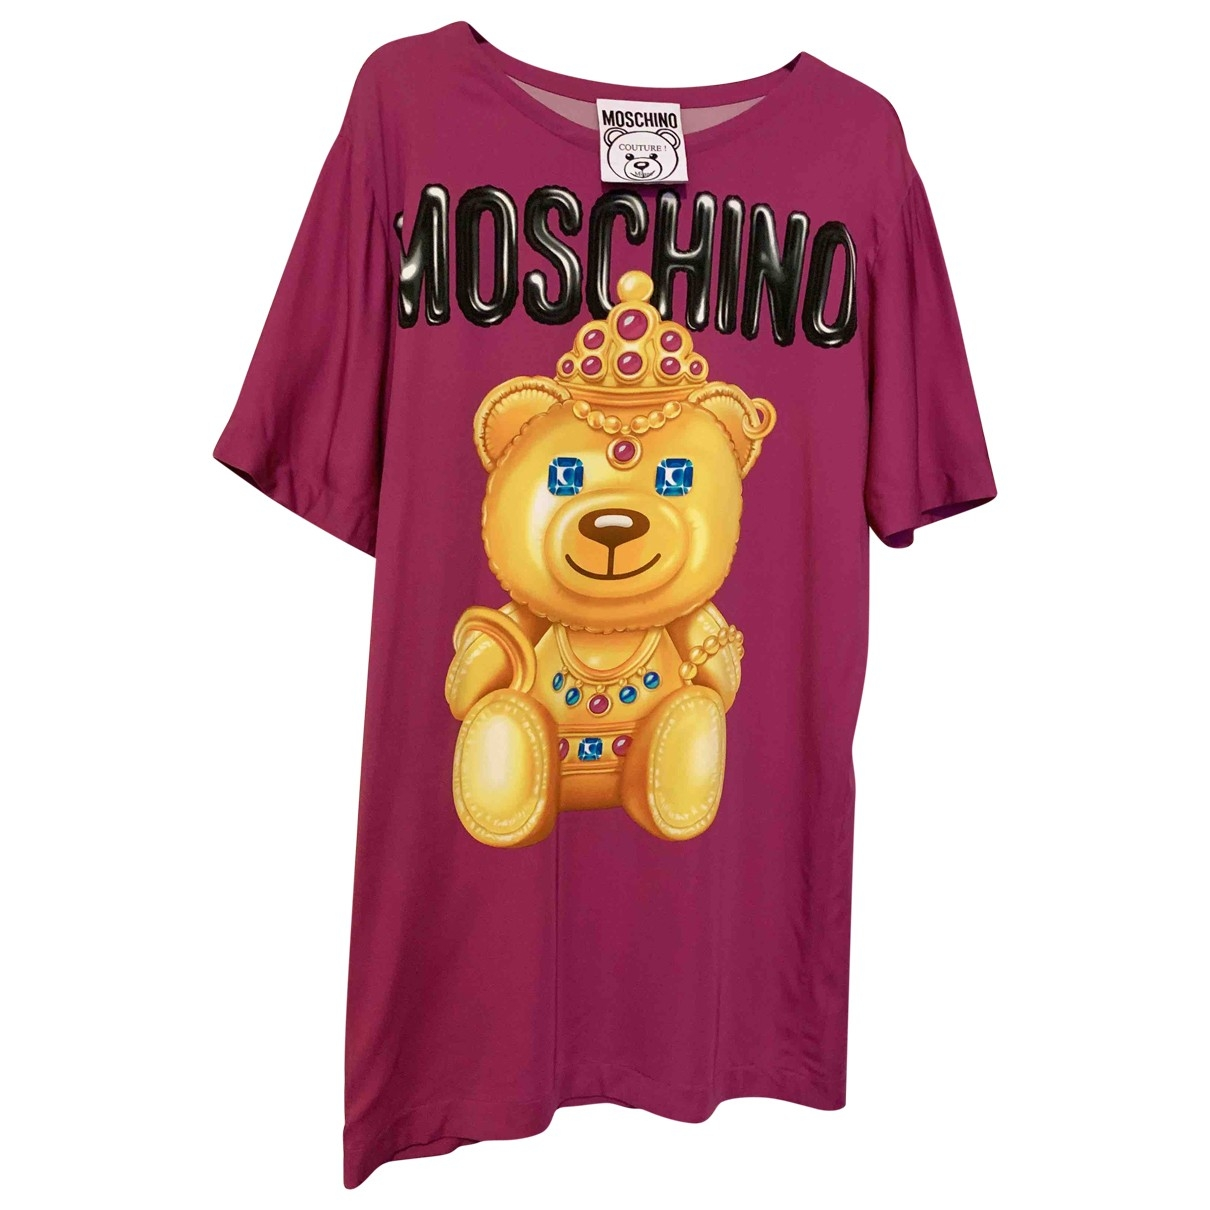 Moschino \N Pink dress for Women 38 IT